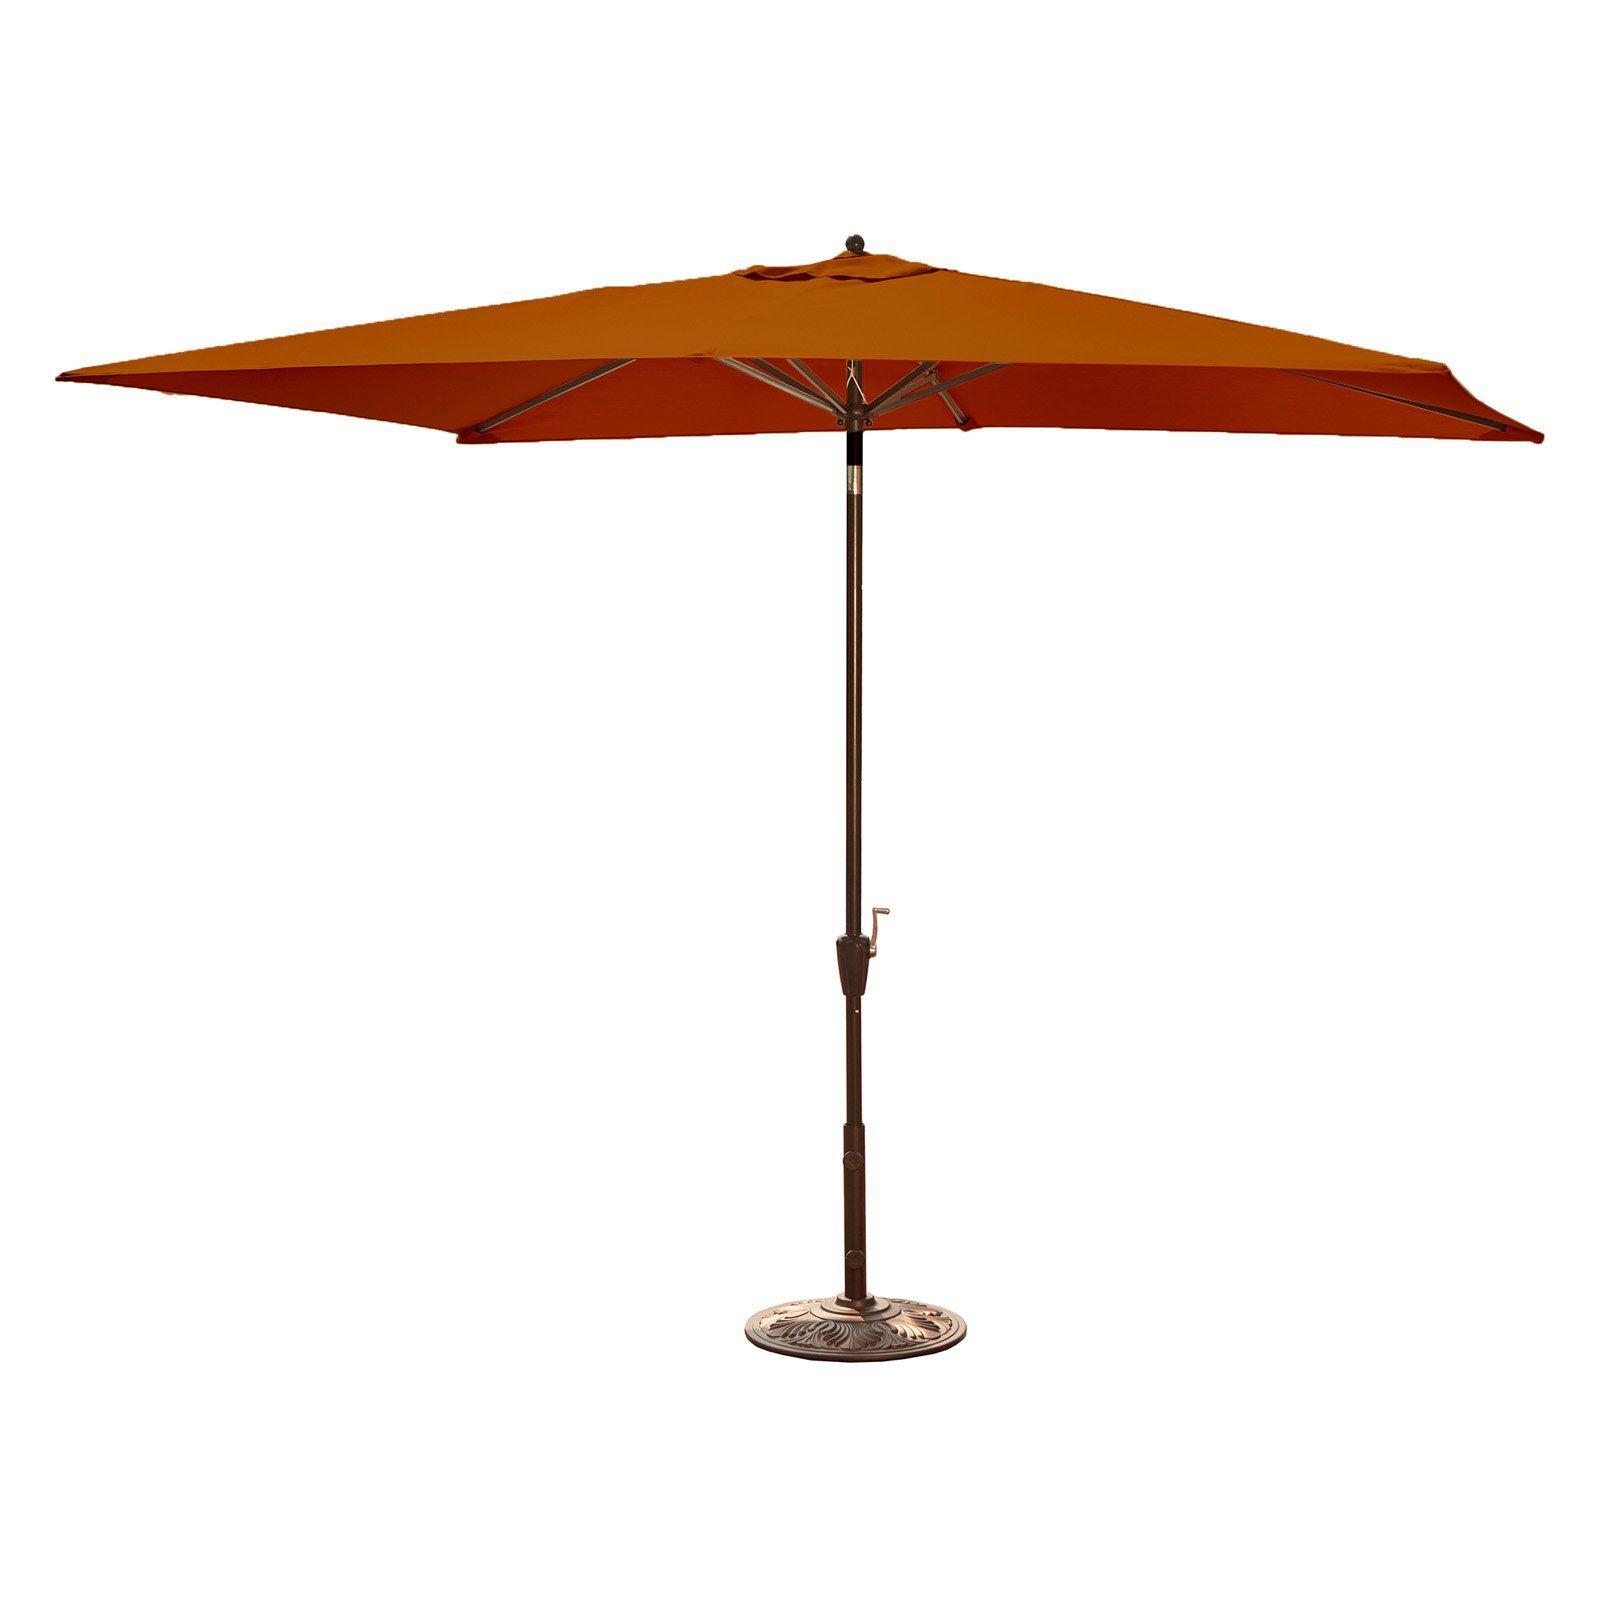 Adriatic 6.5-ft x 10-ft Rectangular Market Umbrella by Blue Wave